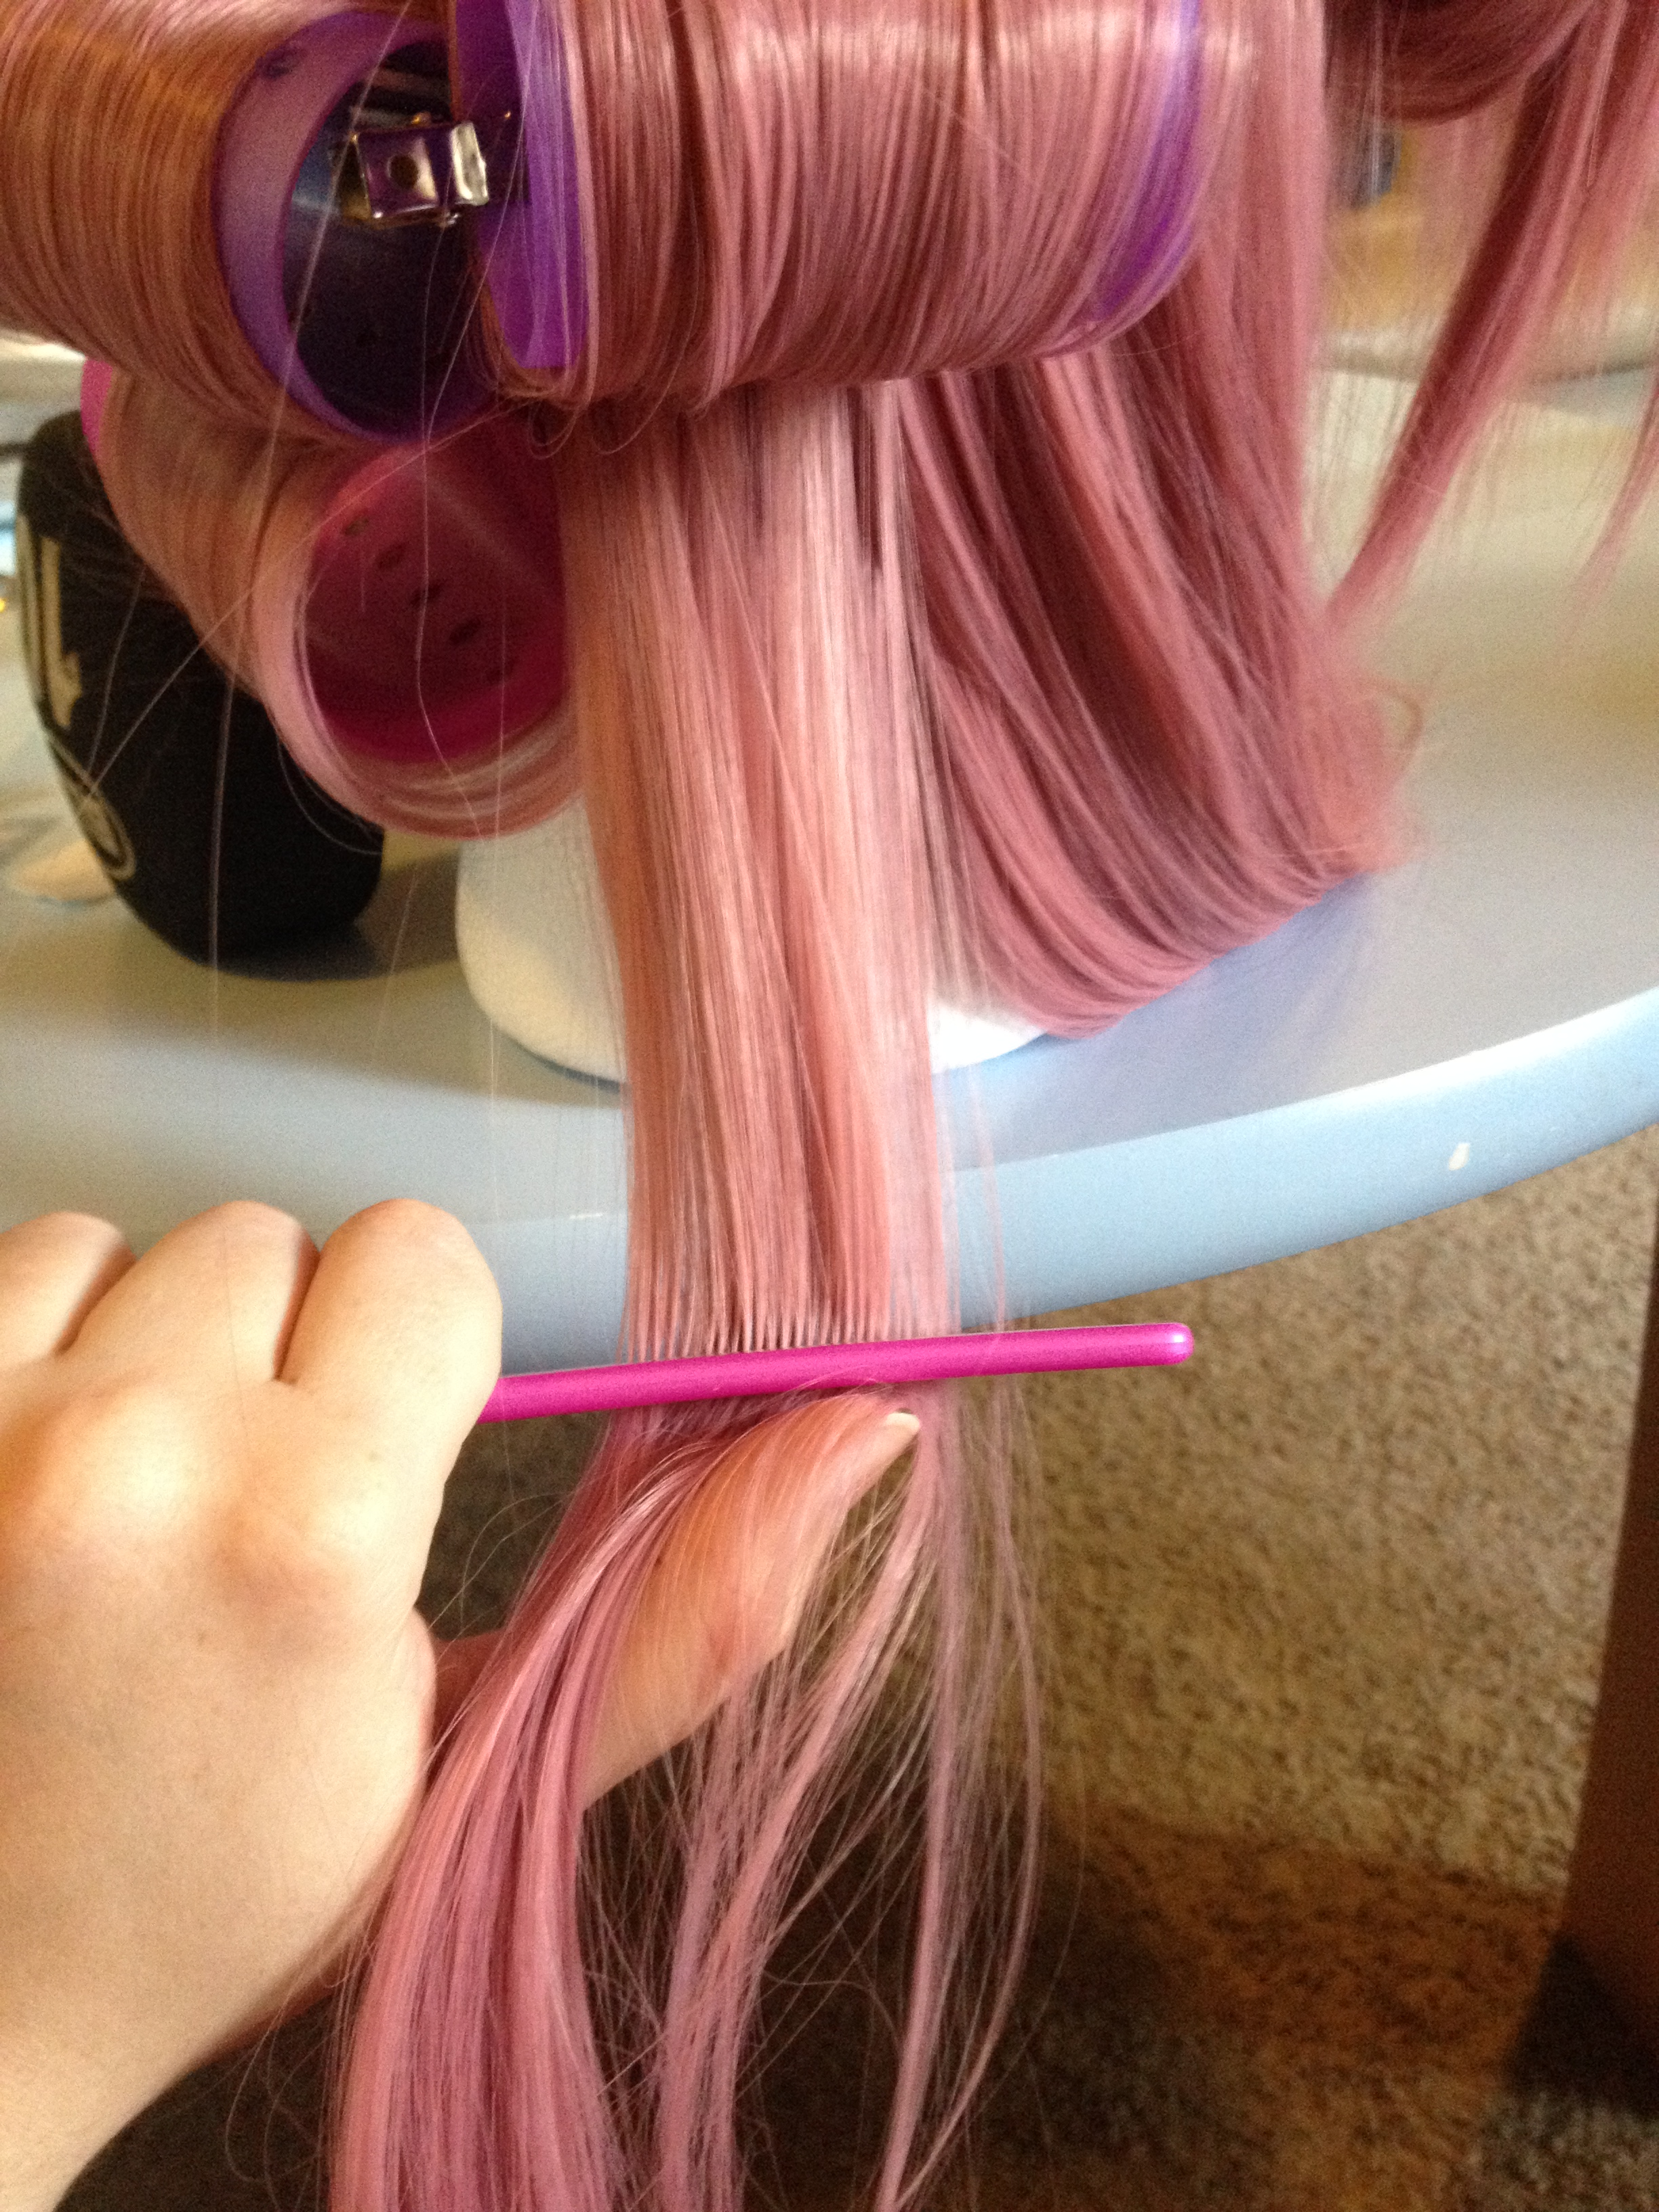 And then I'd clip it shut. I'm not sure if all synthetic wigs are as slick as mine, but the hairspray I used definitely made it easier to work with just by making the hair stickier.